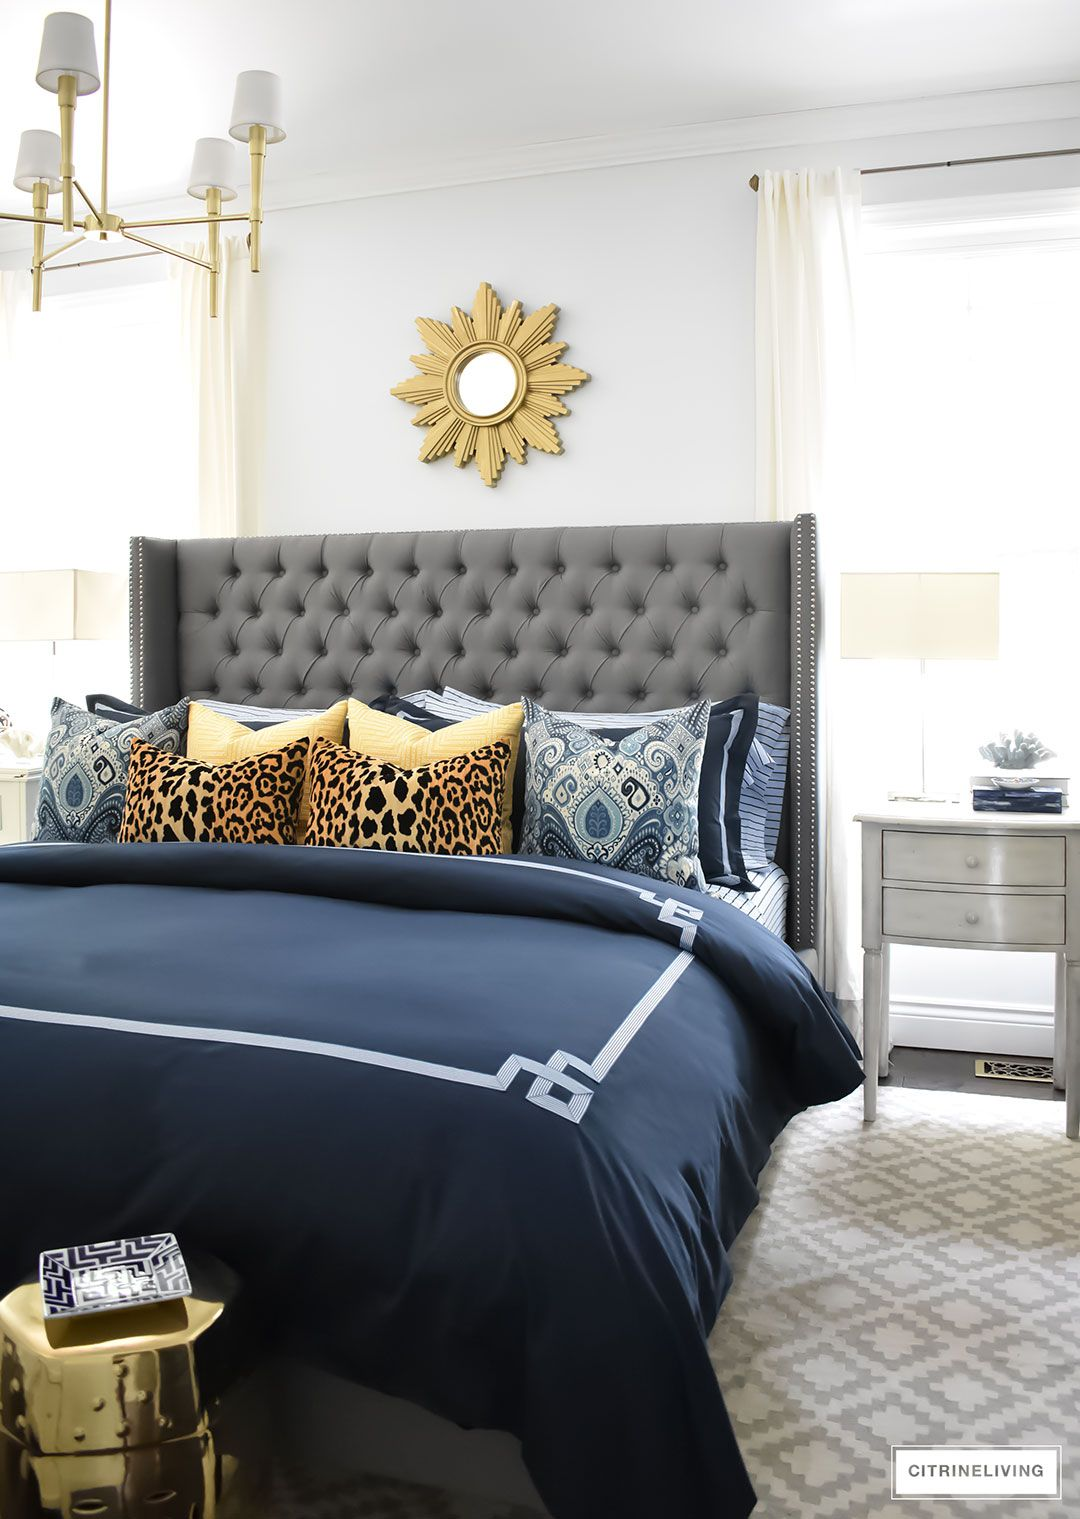 Our Fall Bedroom Navy Blue Bedding With Greek Detail Layered With Luxe Pillows And Sheets Striped Grey And Gold Bedroom Blue And Gold Bedroom Gold Bedroom